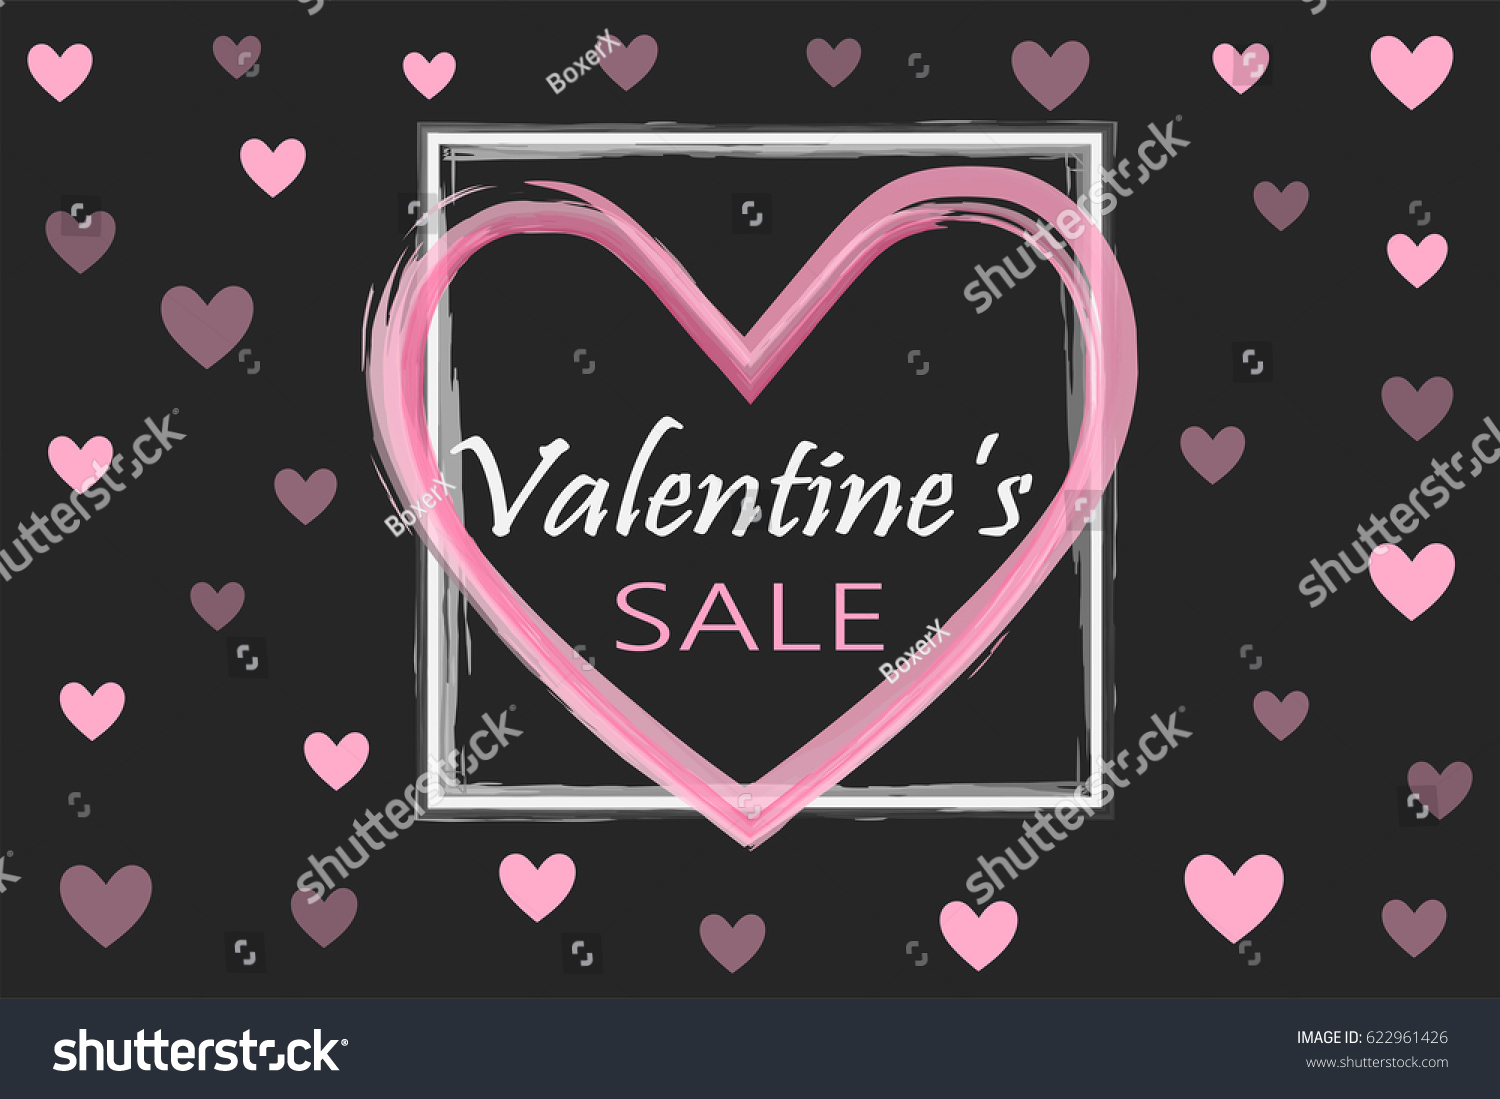 Valentineu0027s Day Sale Background. Holiday Black And Pink Style Card Design  Concept